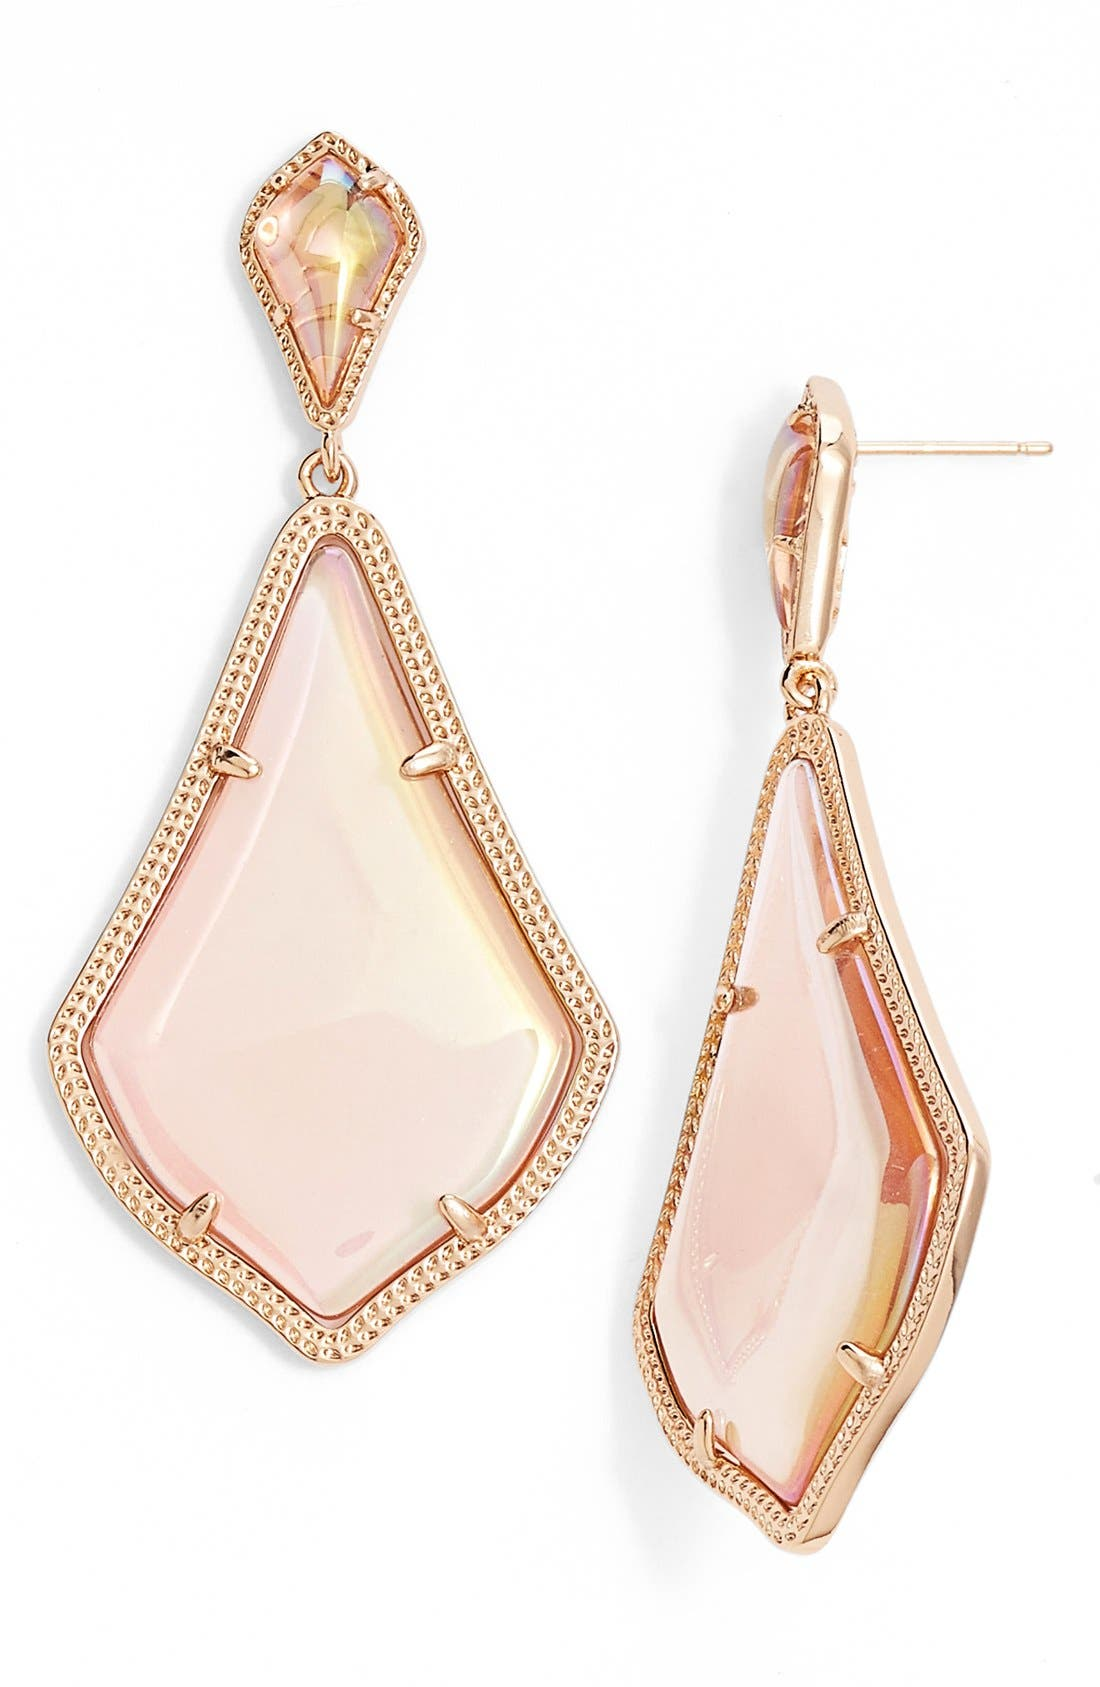 Main Image - Kendra Scott 'Mystic Bazaar - Alexis' Drop Earrings